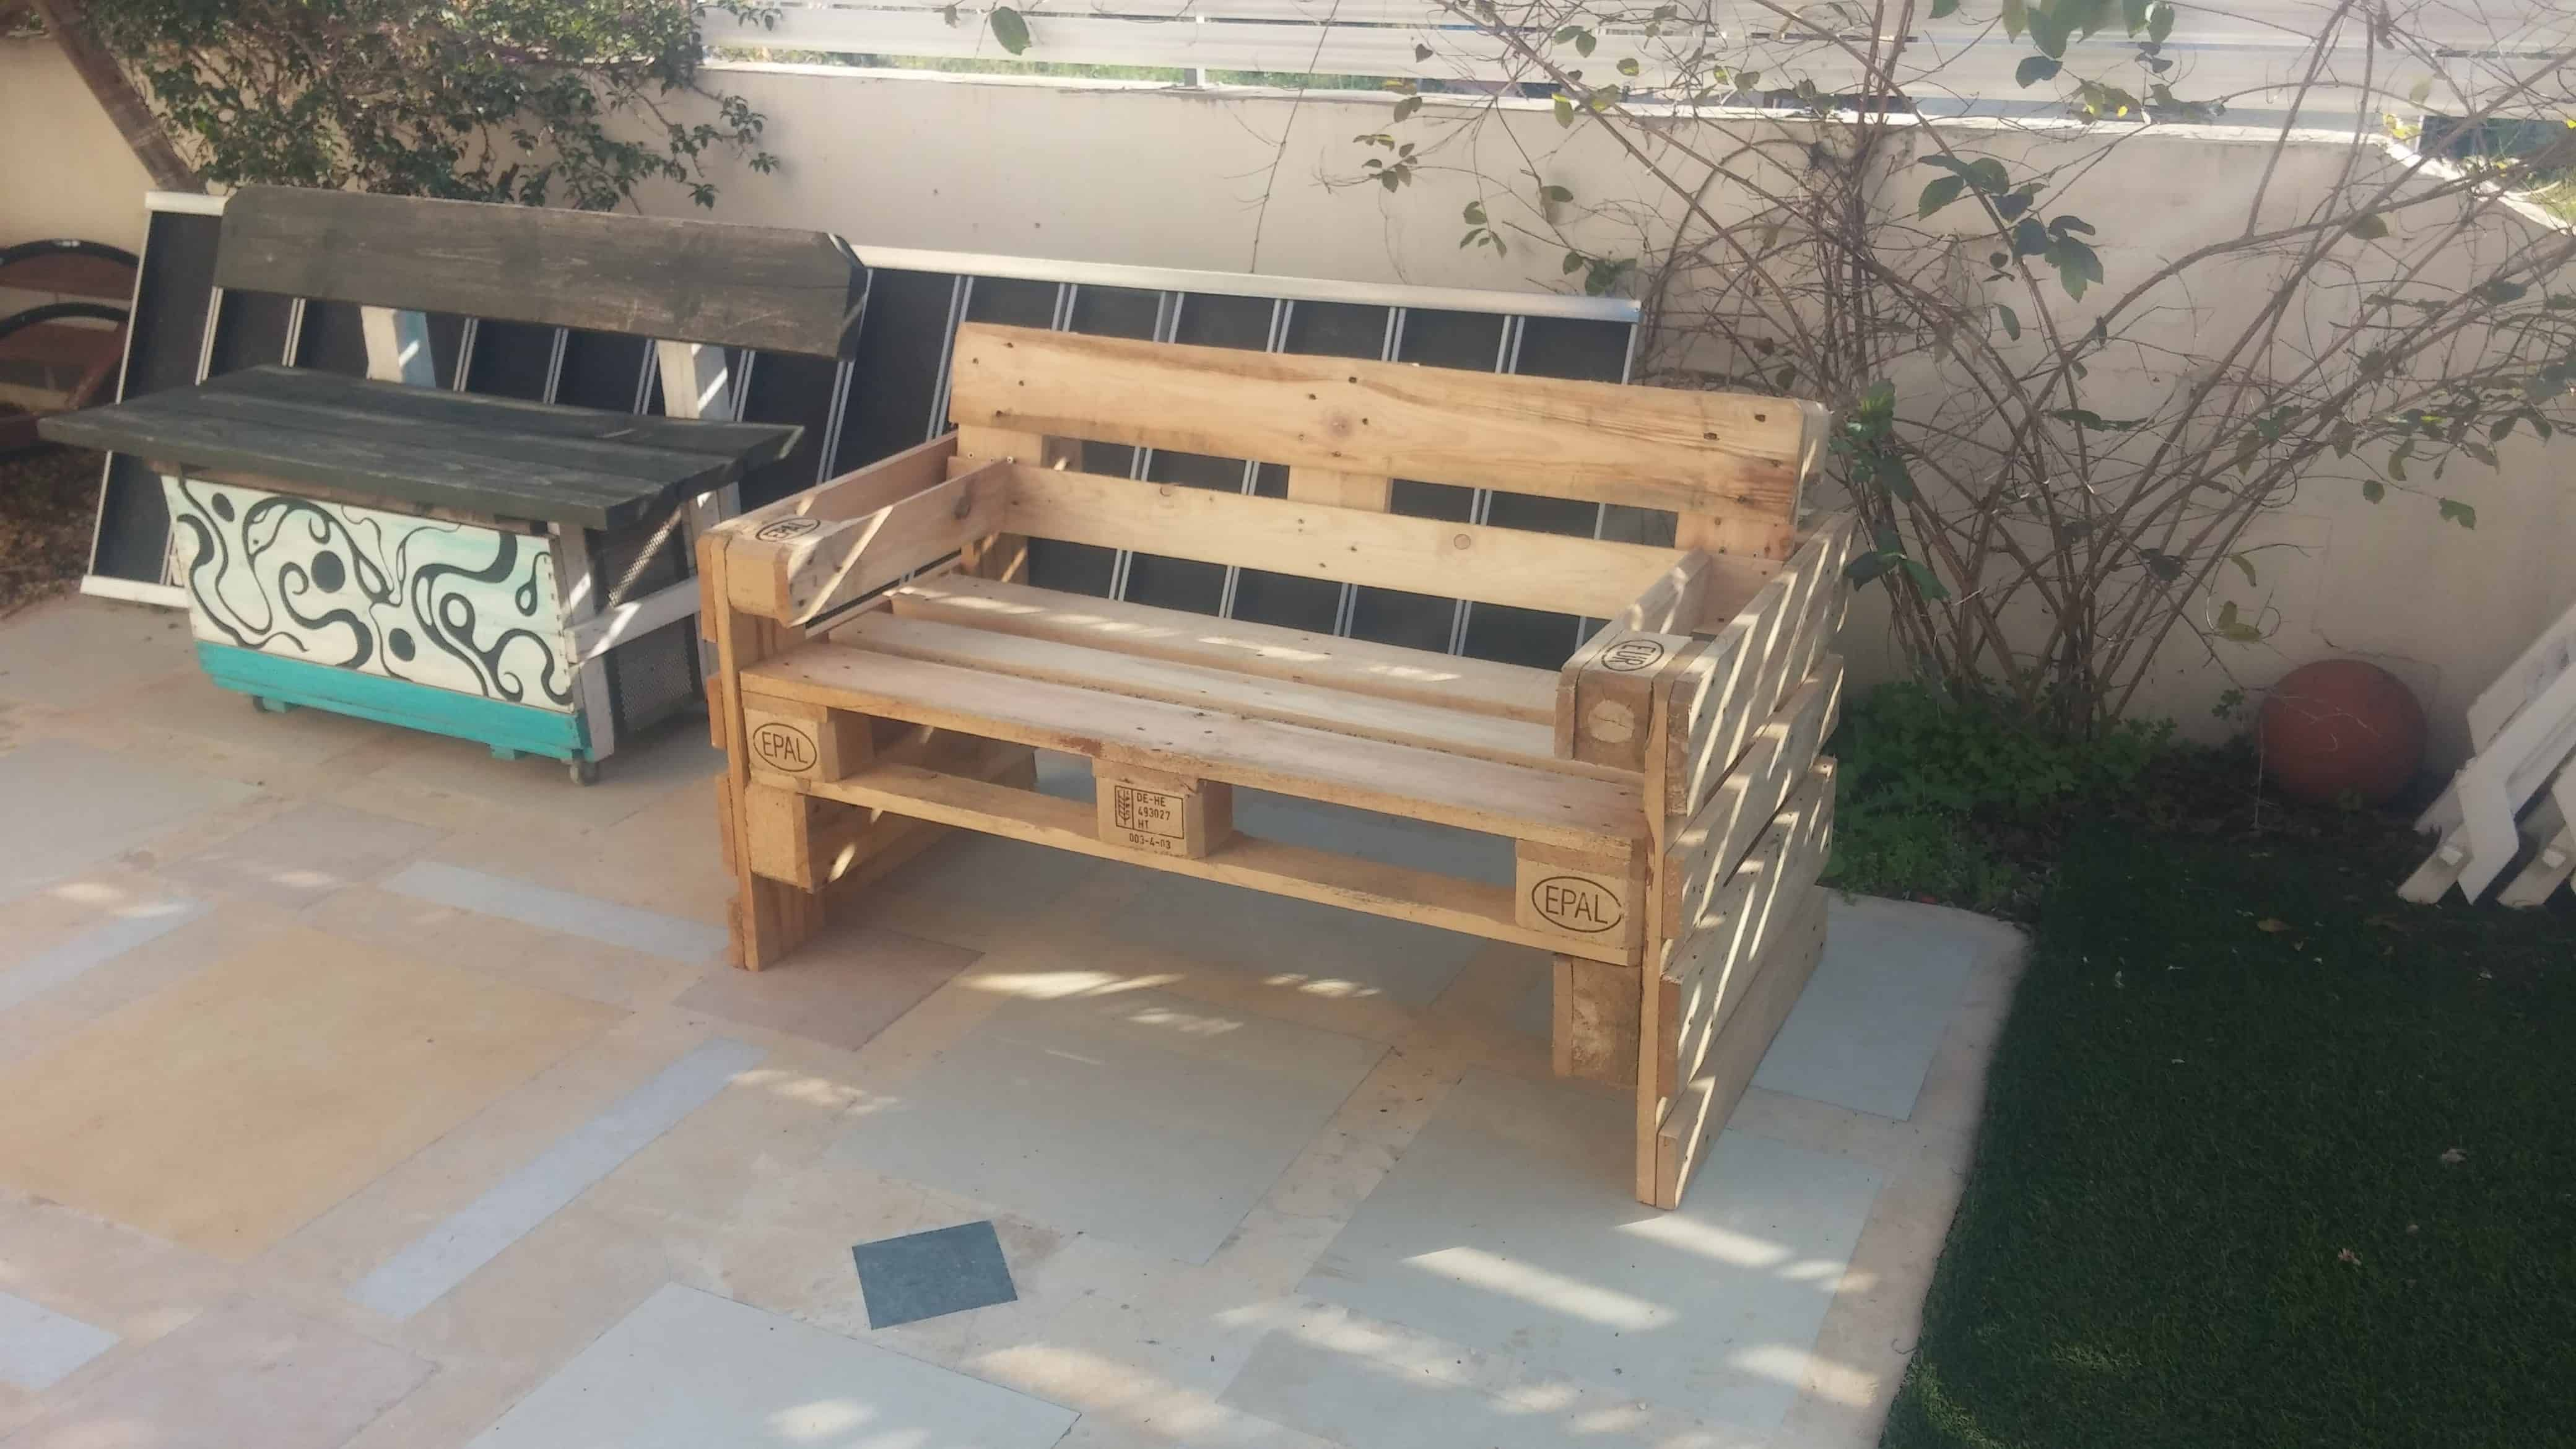 I Made This 3 Pallet Patio Bench In Only An Hour Read More Garden Outdoor Palletbenches Palletdiyideas Pallet Chair Pallet Bench Patio Bench